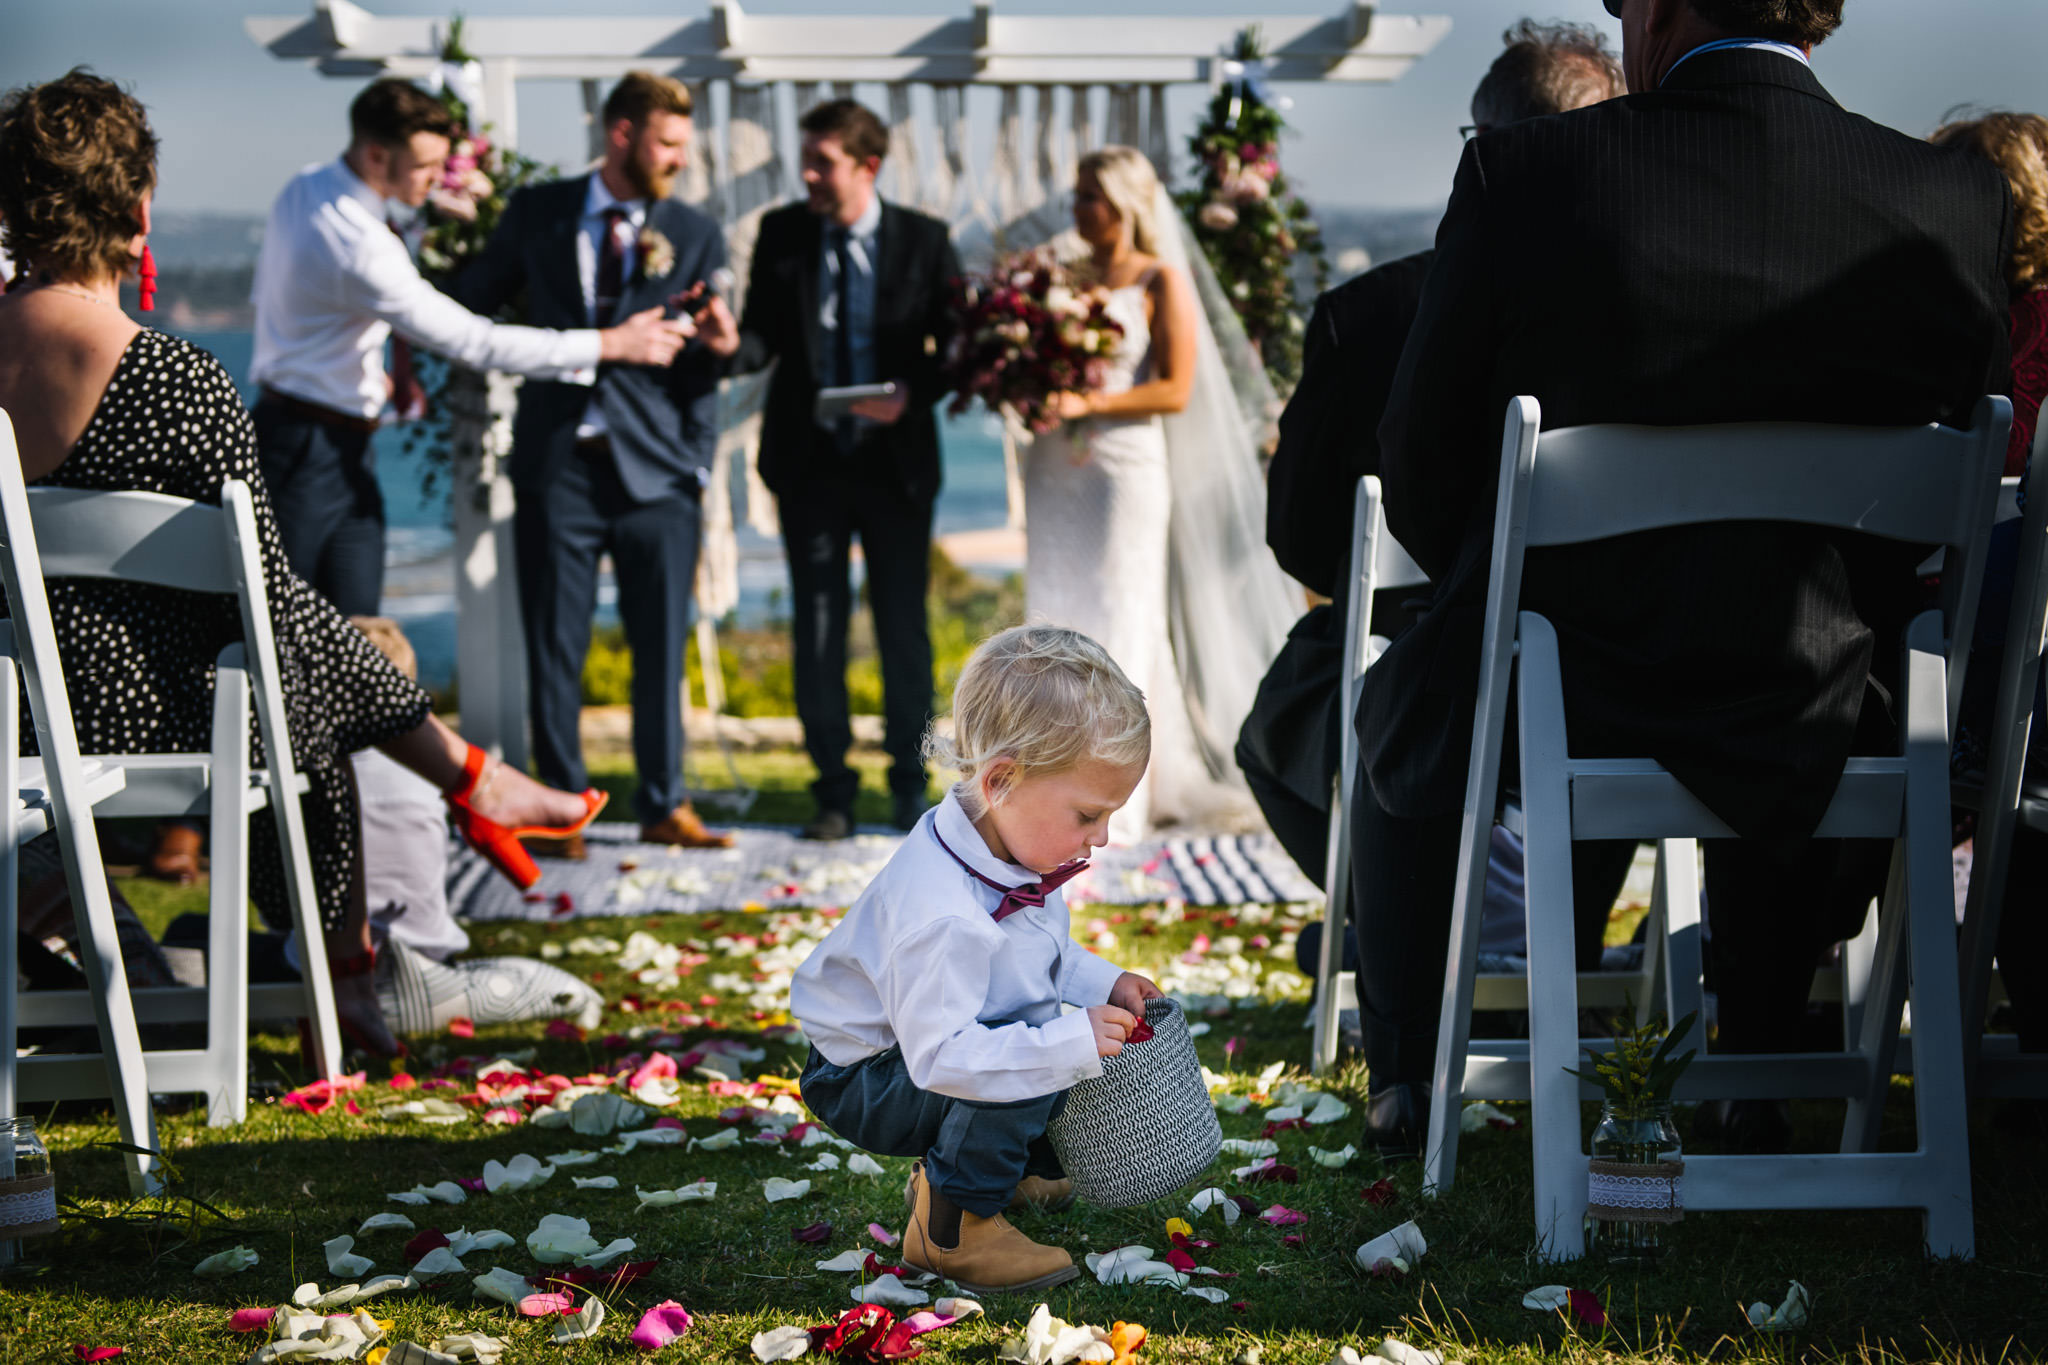 Toddler ring bearer gathers flower petals during wedding ceremony